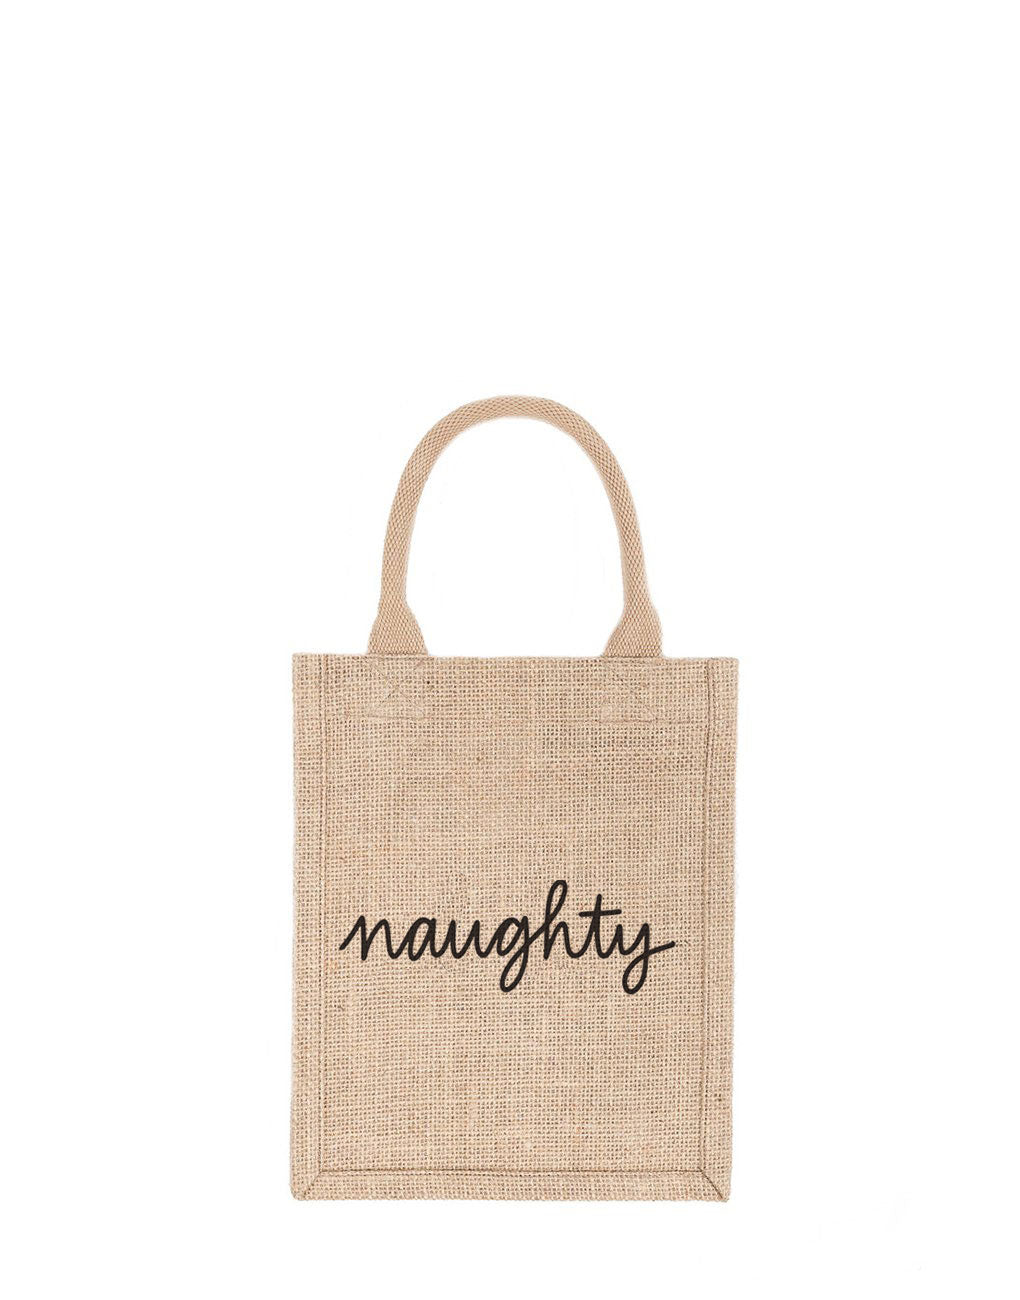 Small Naughty Reusable Gift Tote In Black Font | The Little Market